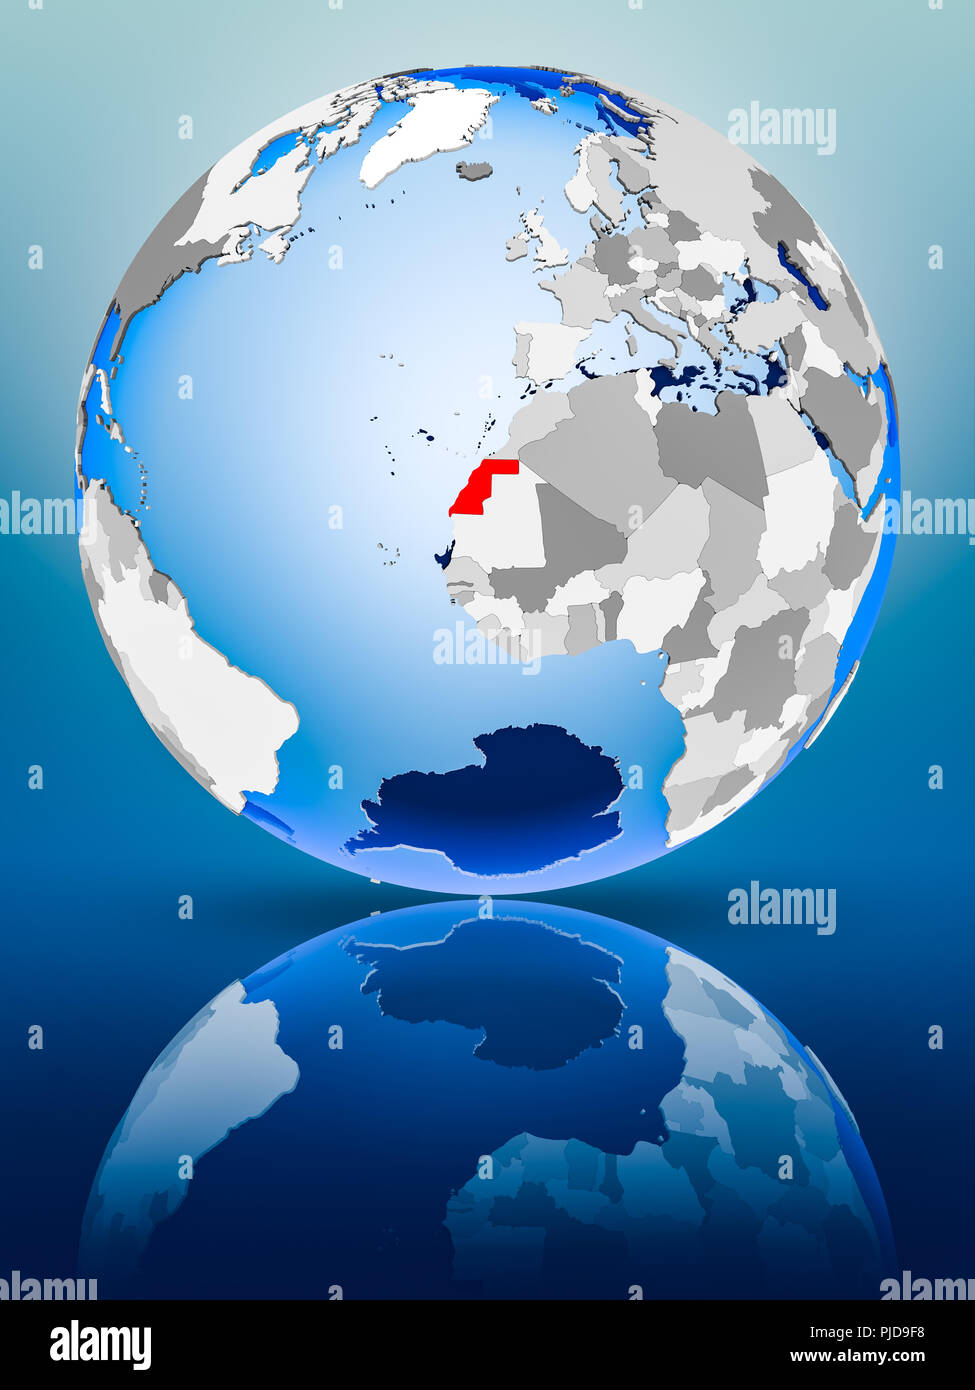 Western Sahara on political globe standing on reflective surface. 3D illustration. - Stock Image